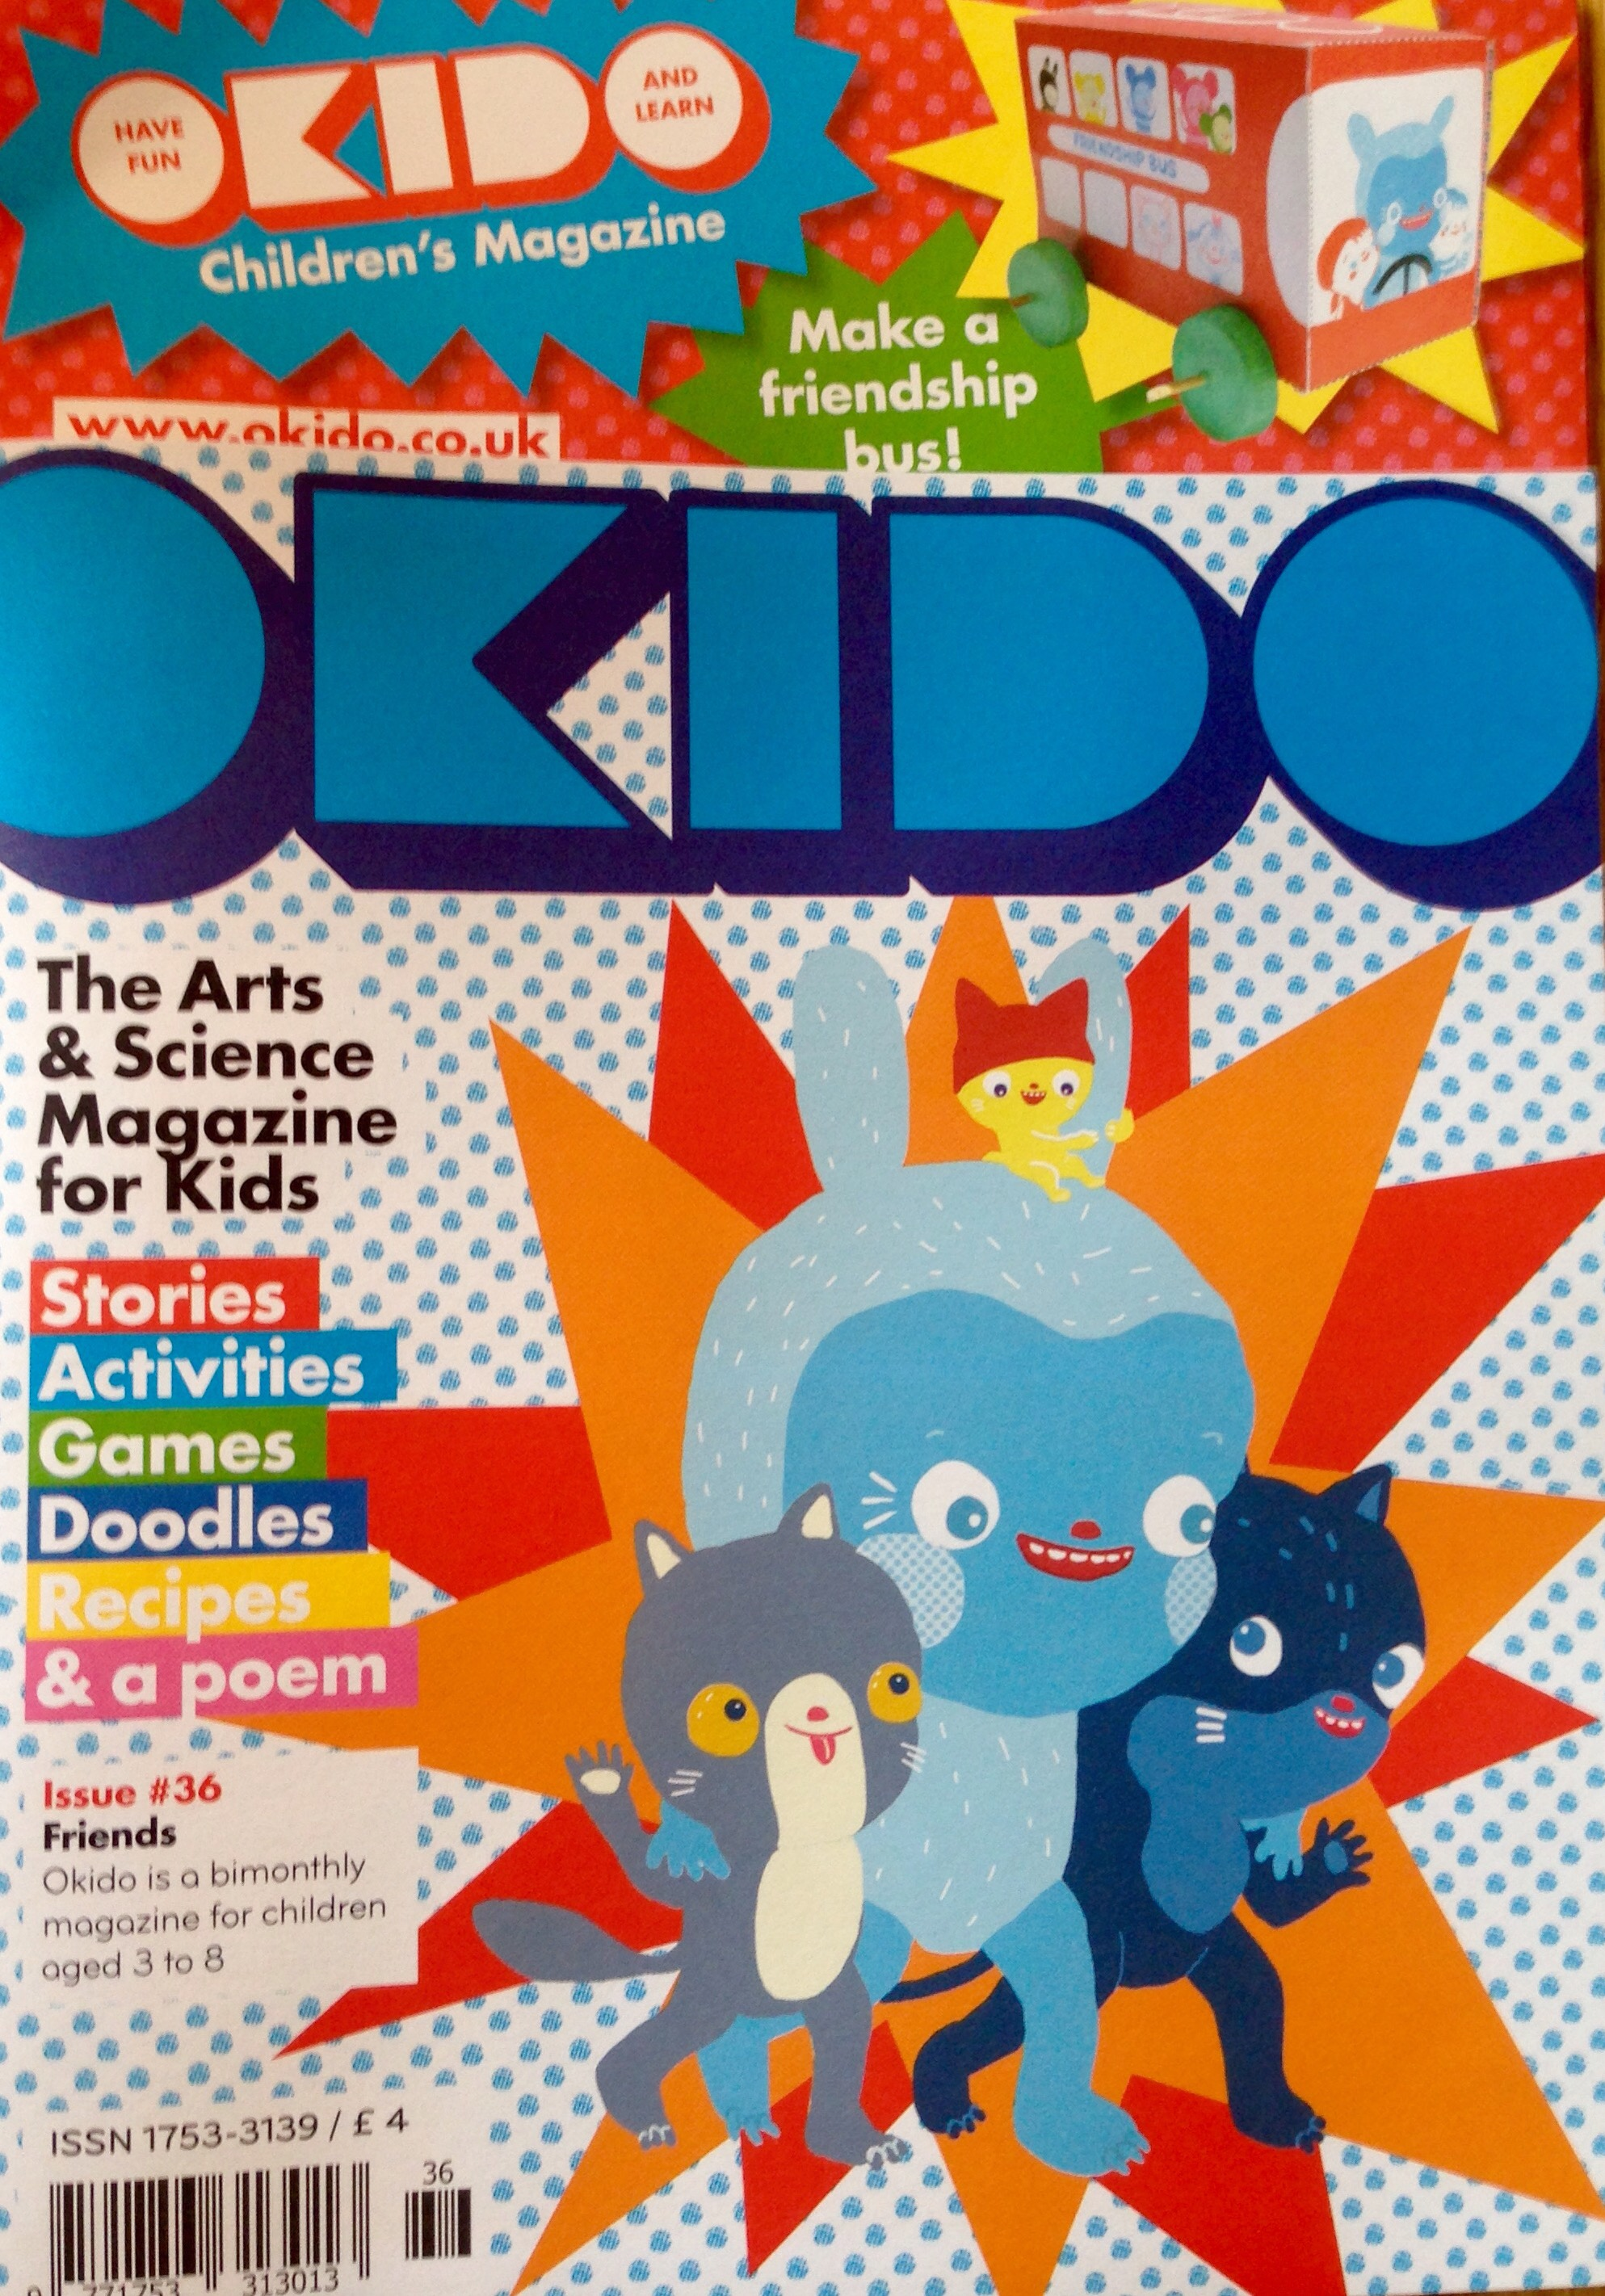 All about OKIDO Children's Magazine – AAUBlog